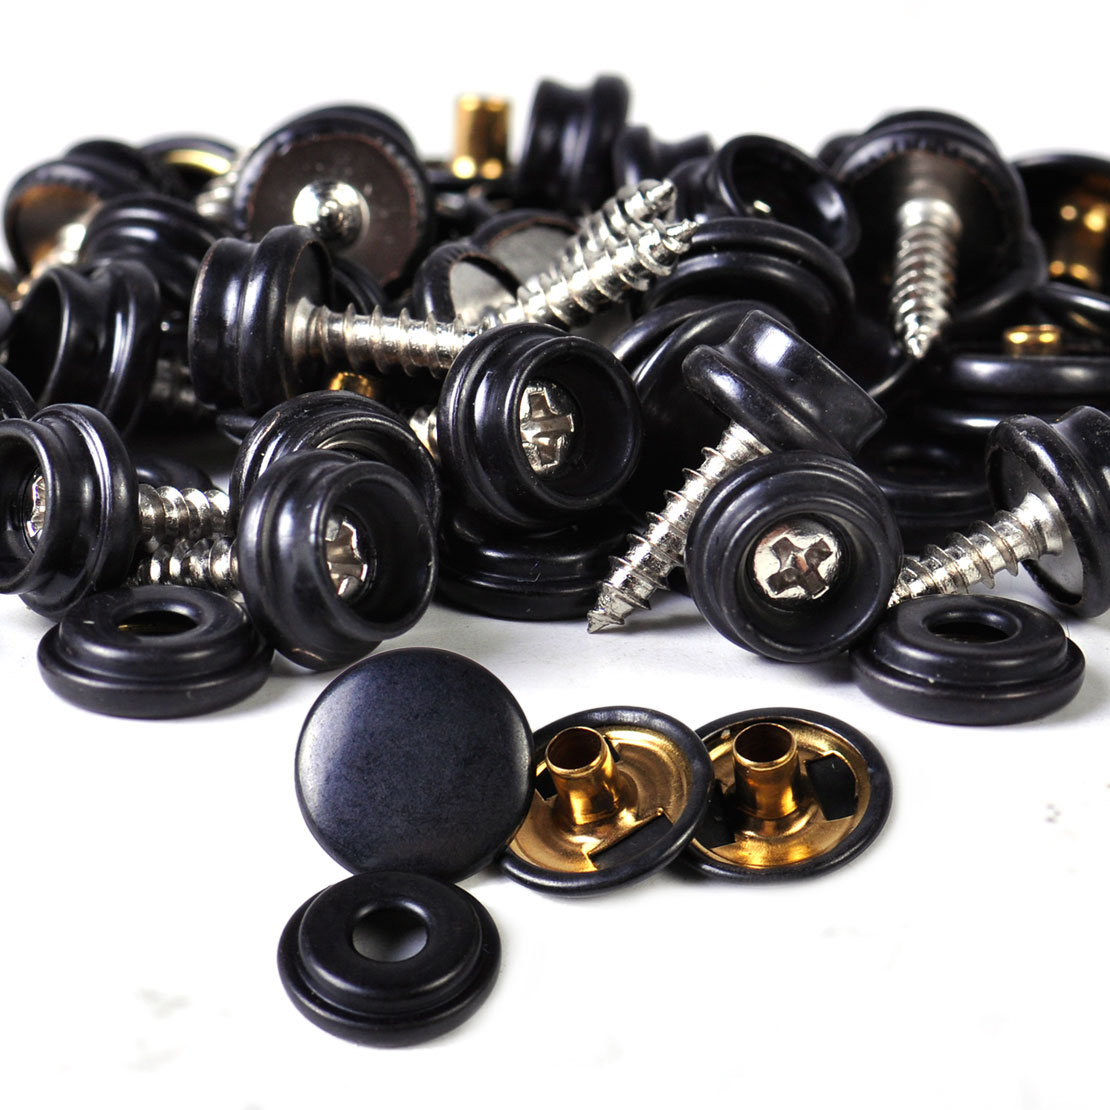 CITALL 25set Black Snap Button Screw Studs fit for Canvas Tent Canopy Fastener Sockets Boat Marine Cover